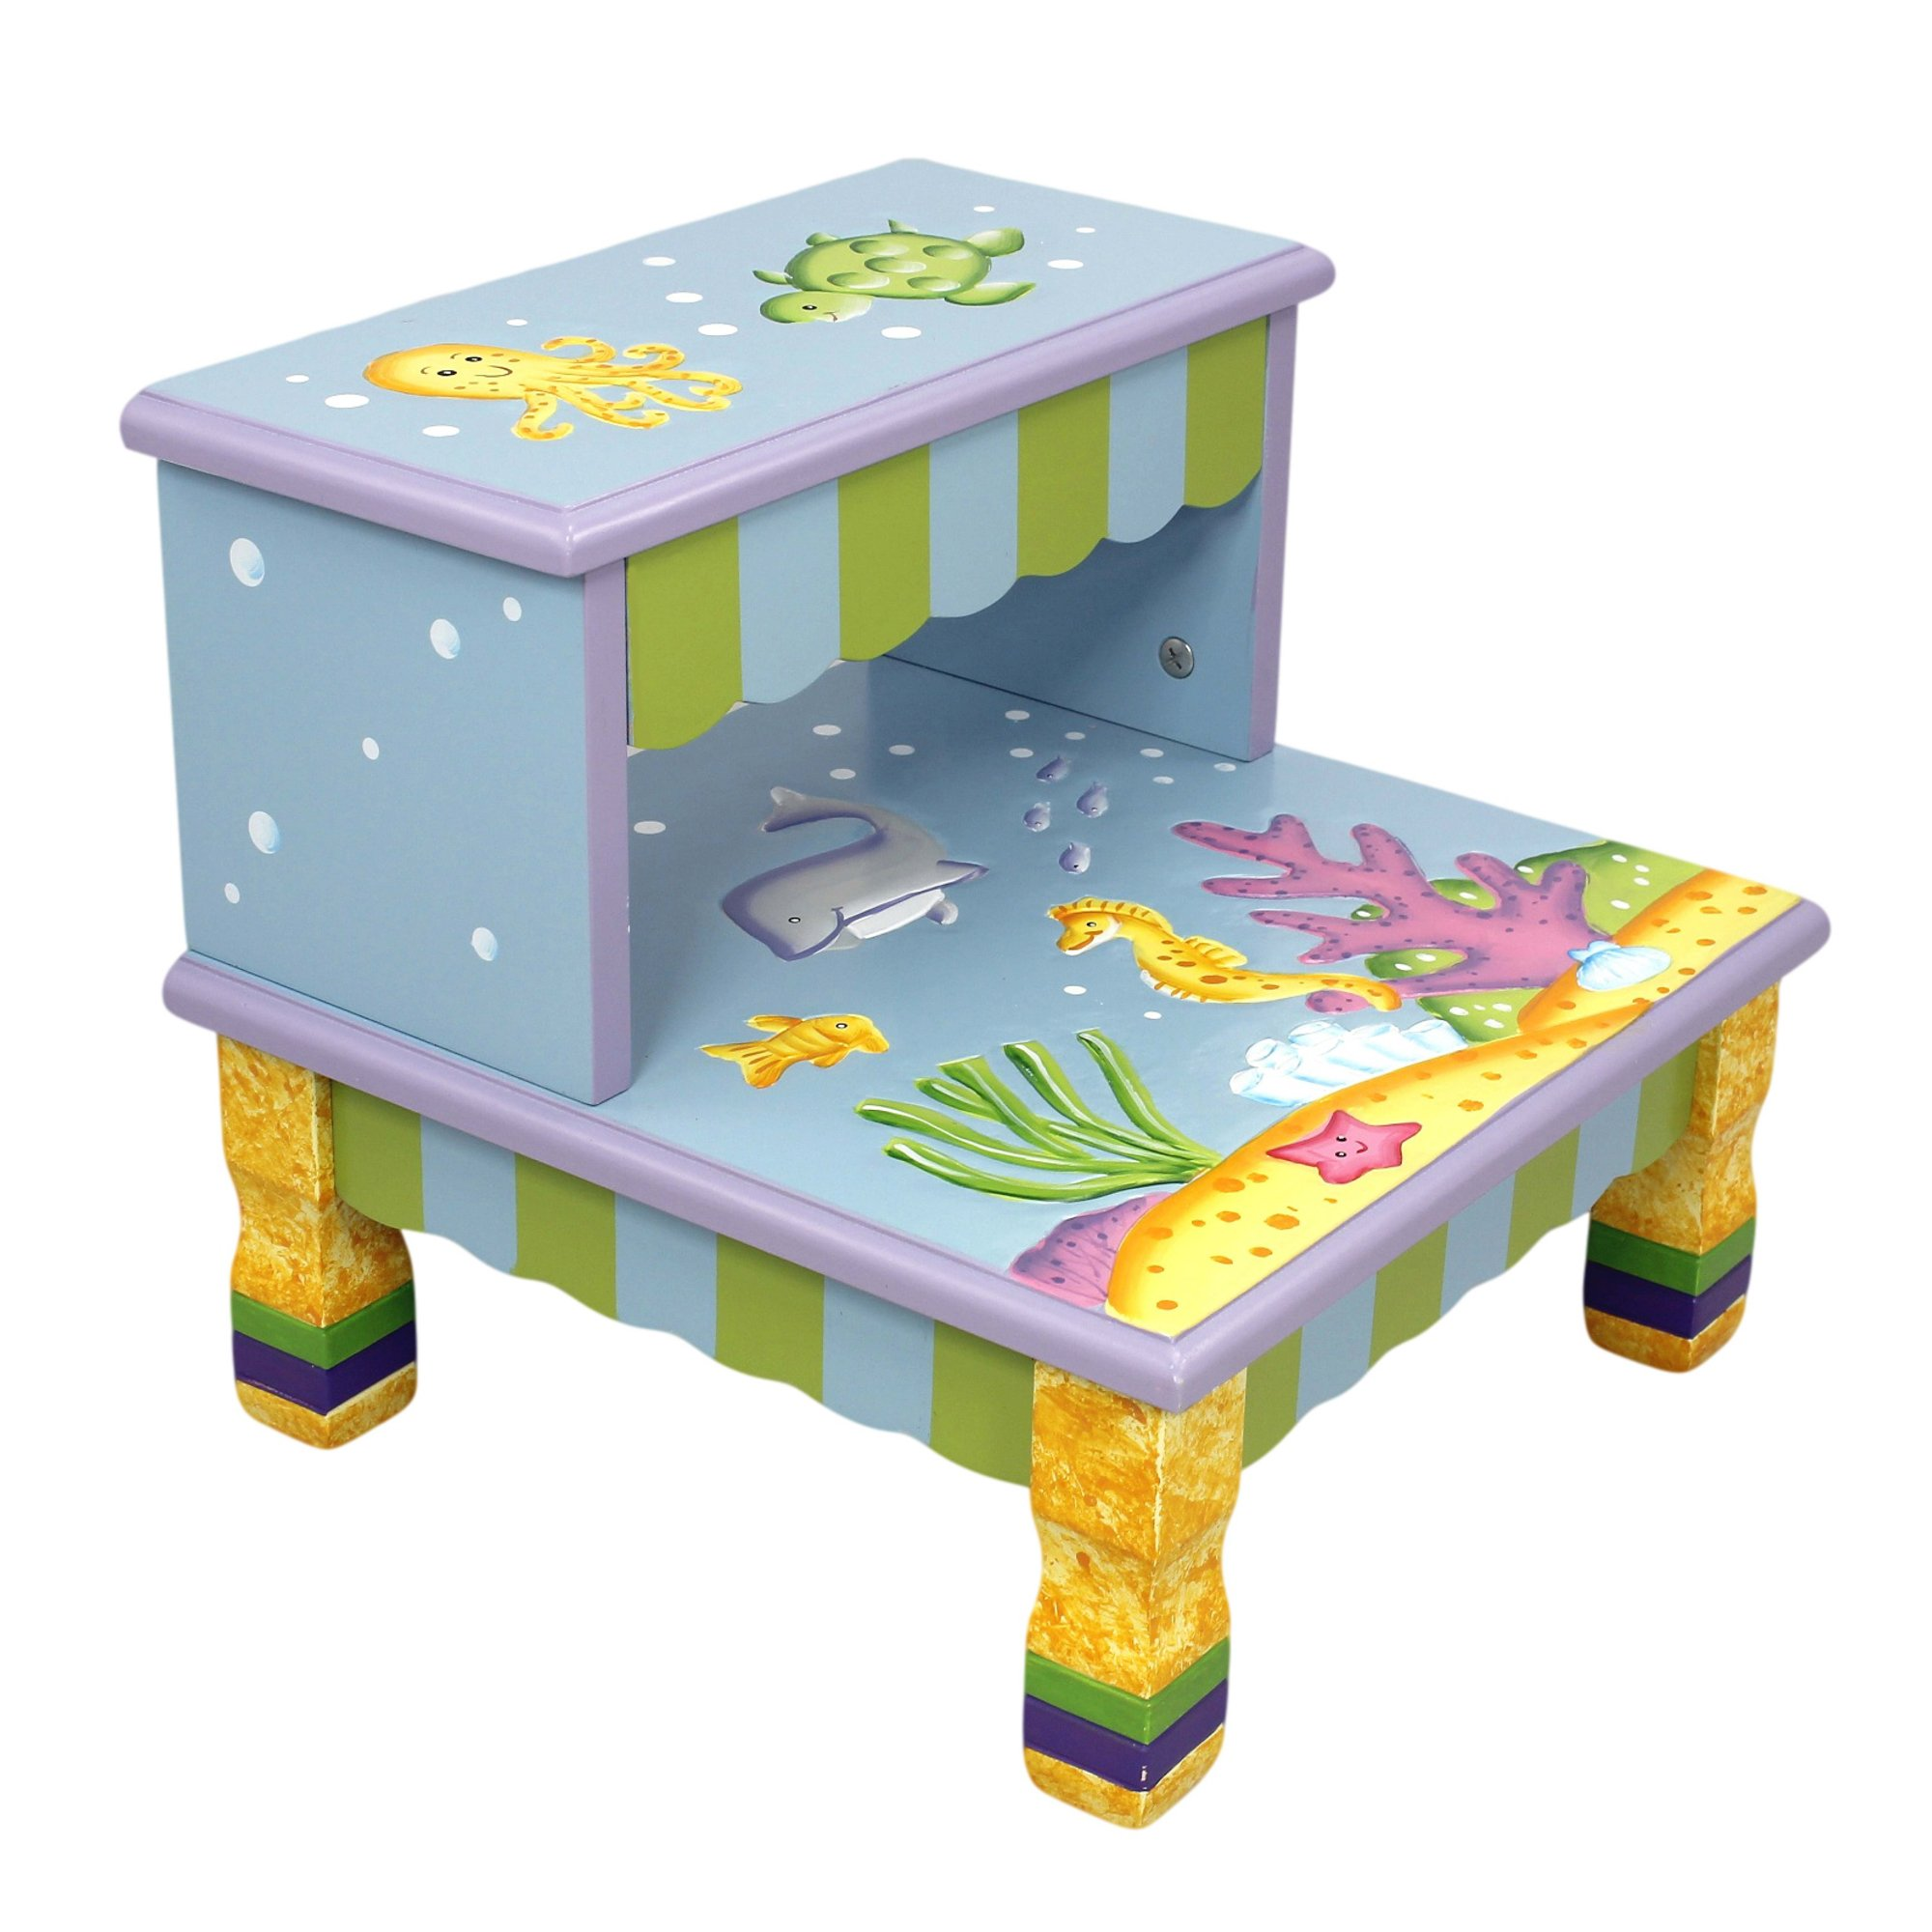 Fantasy Fields - Under The Sea Thematic Kids Wooden Step Stool with Storage | Imagination Inspiring Hand Crafted & Hand Painted Details   Non-Toxic, Lead Free Water-based Paint